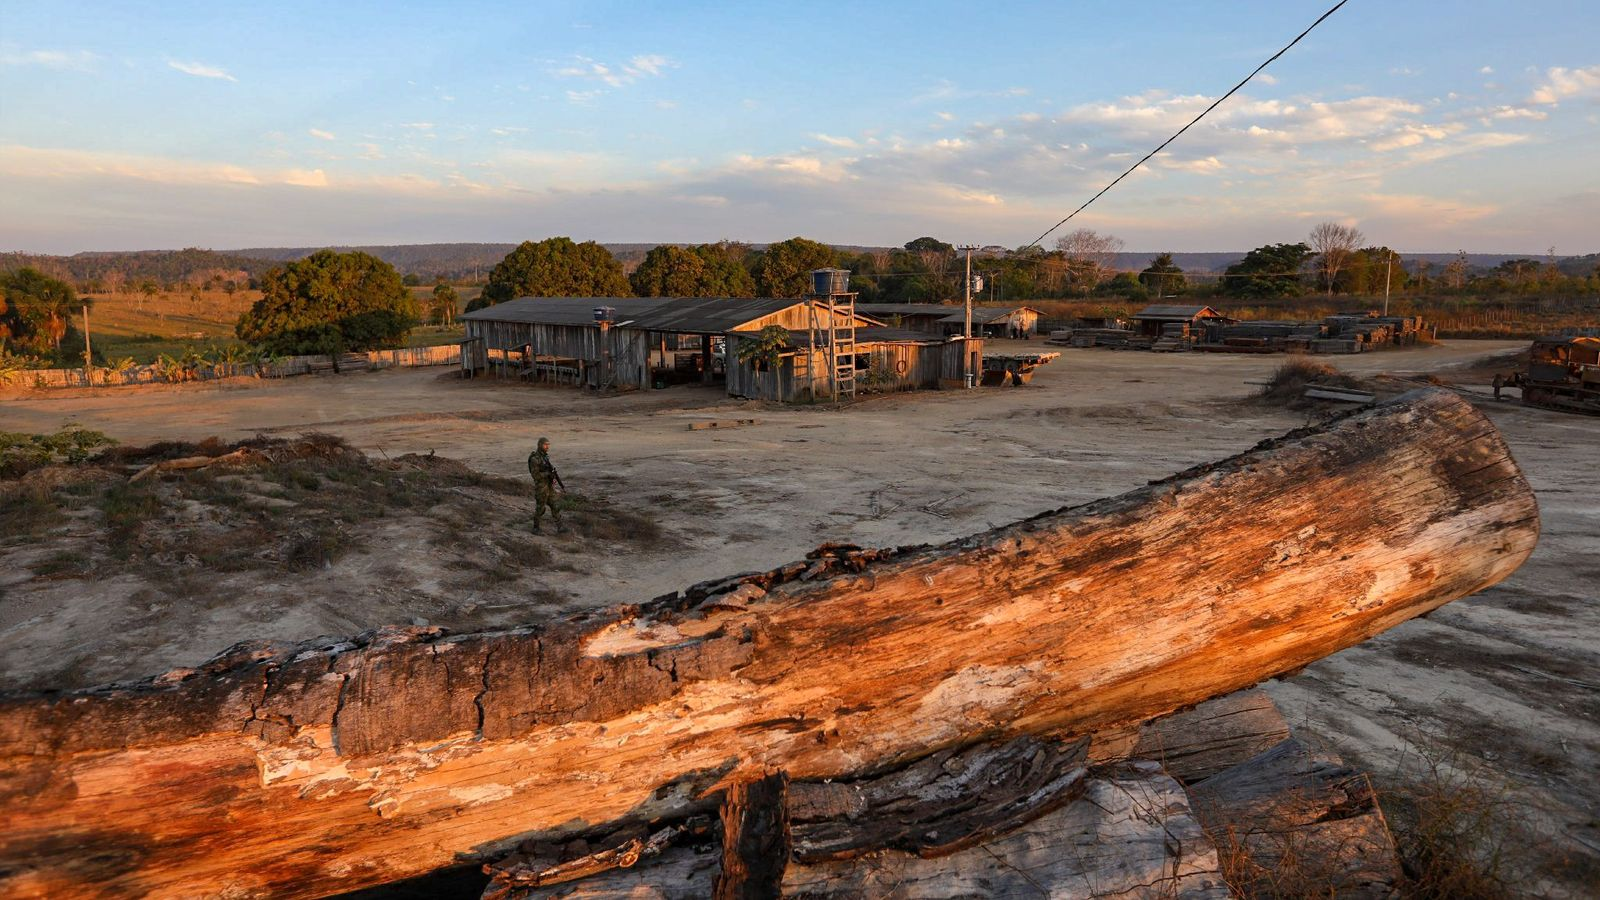 An officer from IBAMA, Brazil's environment protection agency, stands vigil at a sawmill outside Boa Vista ...